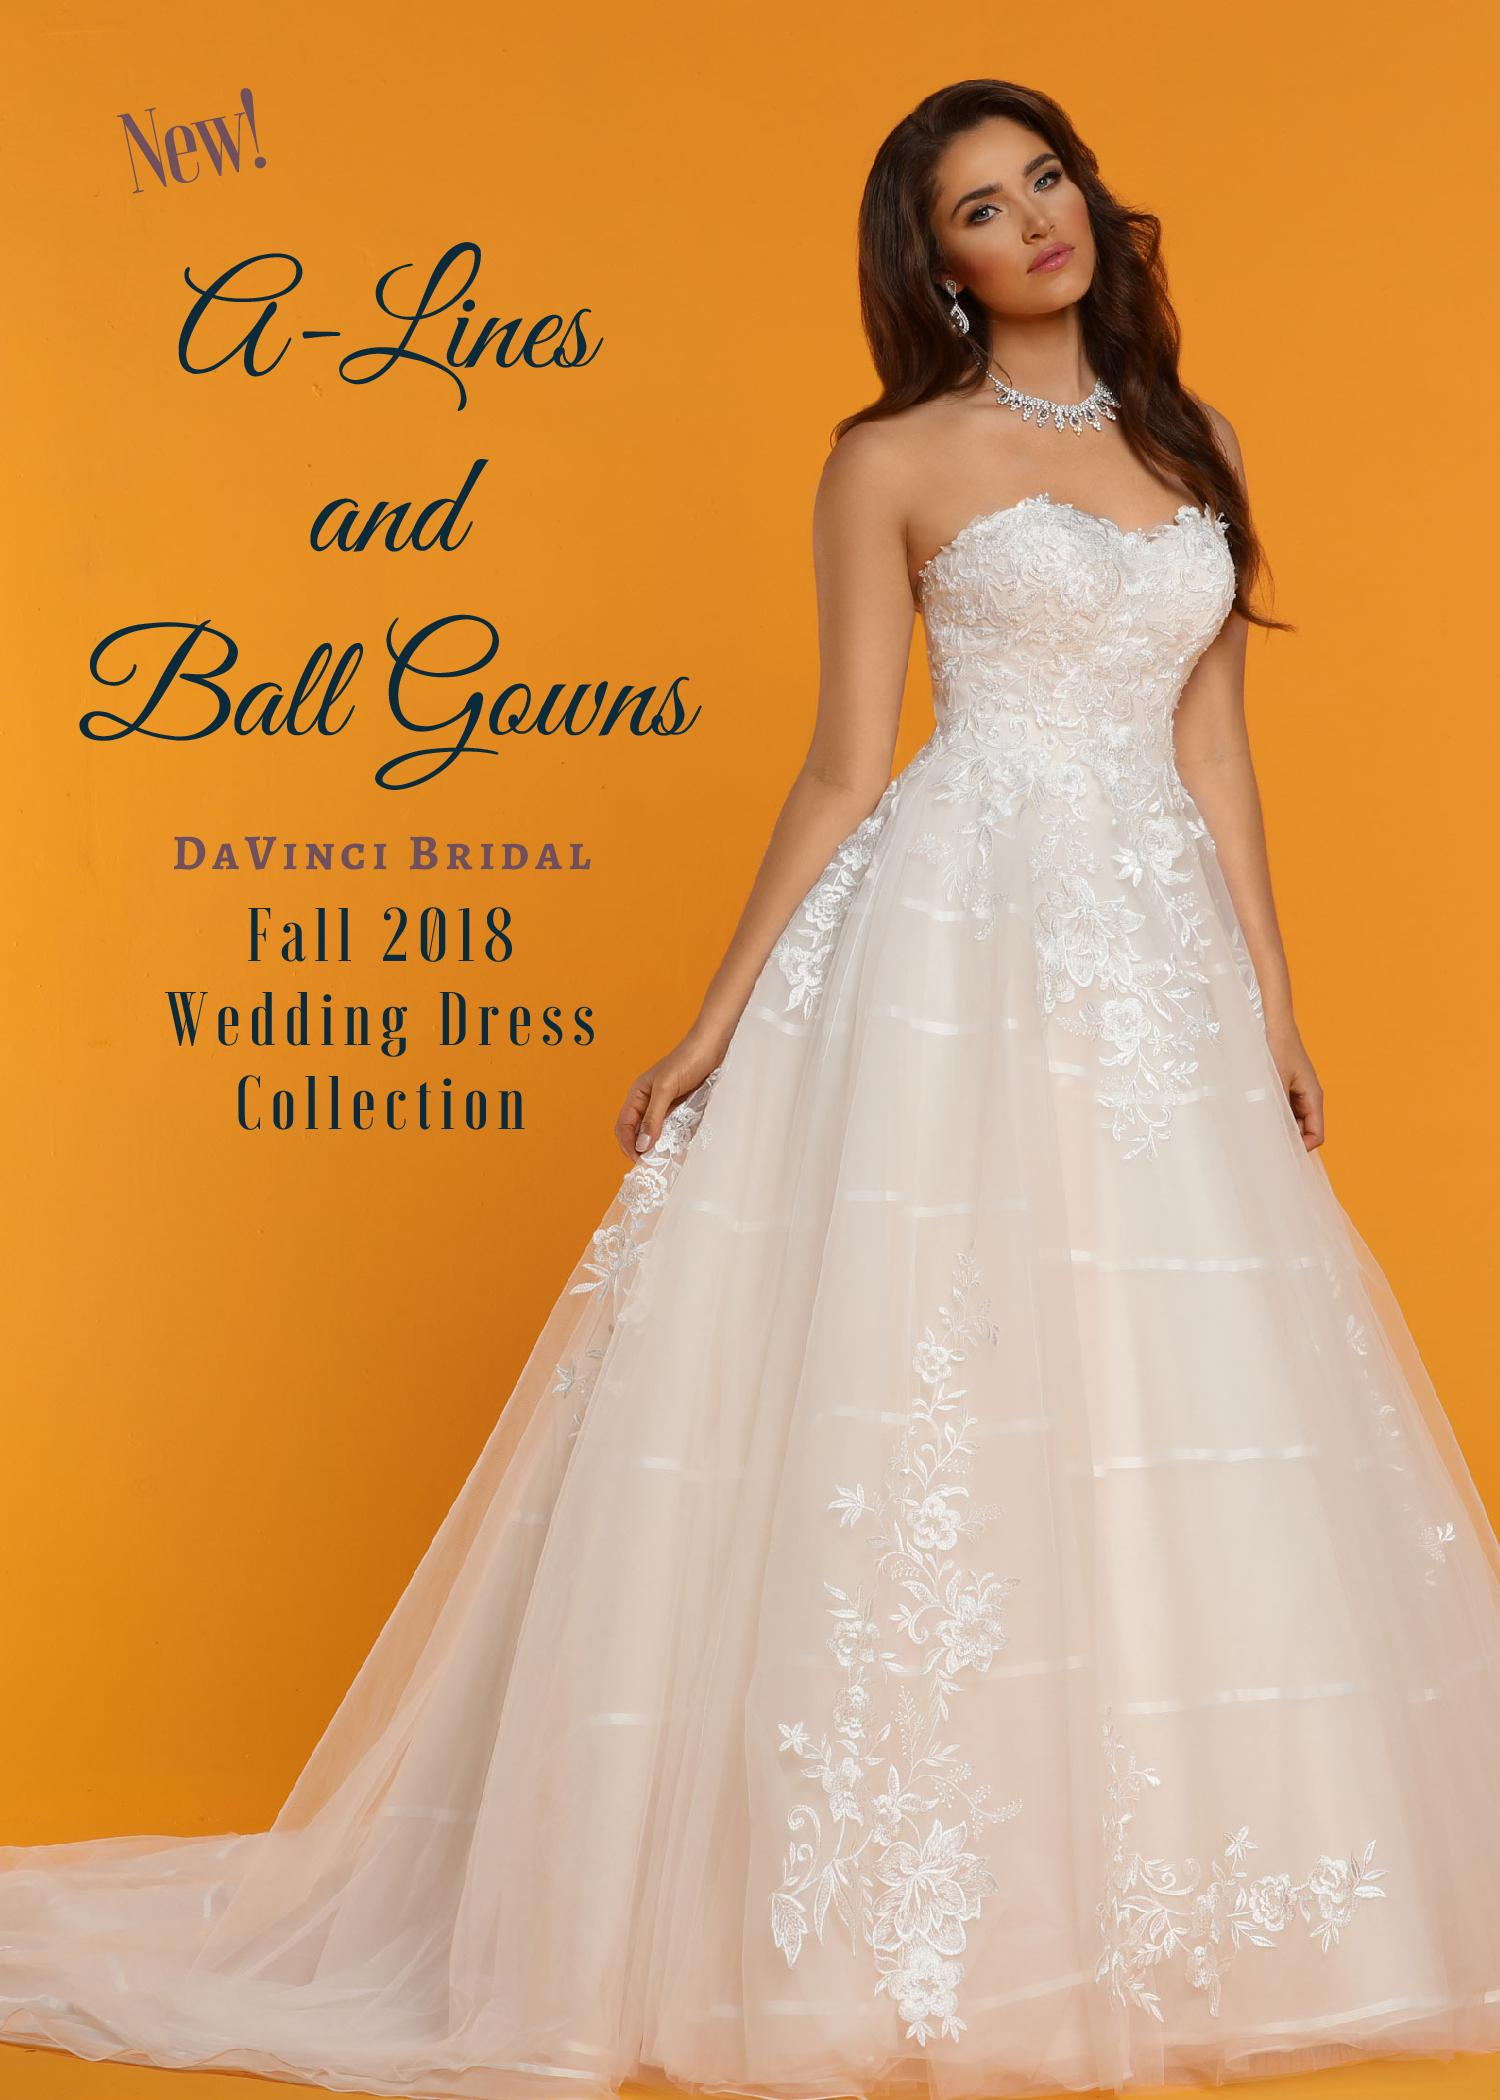 A-Line Ball Gown Wedding Dress Collection: New for Fall 2018